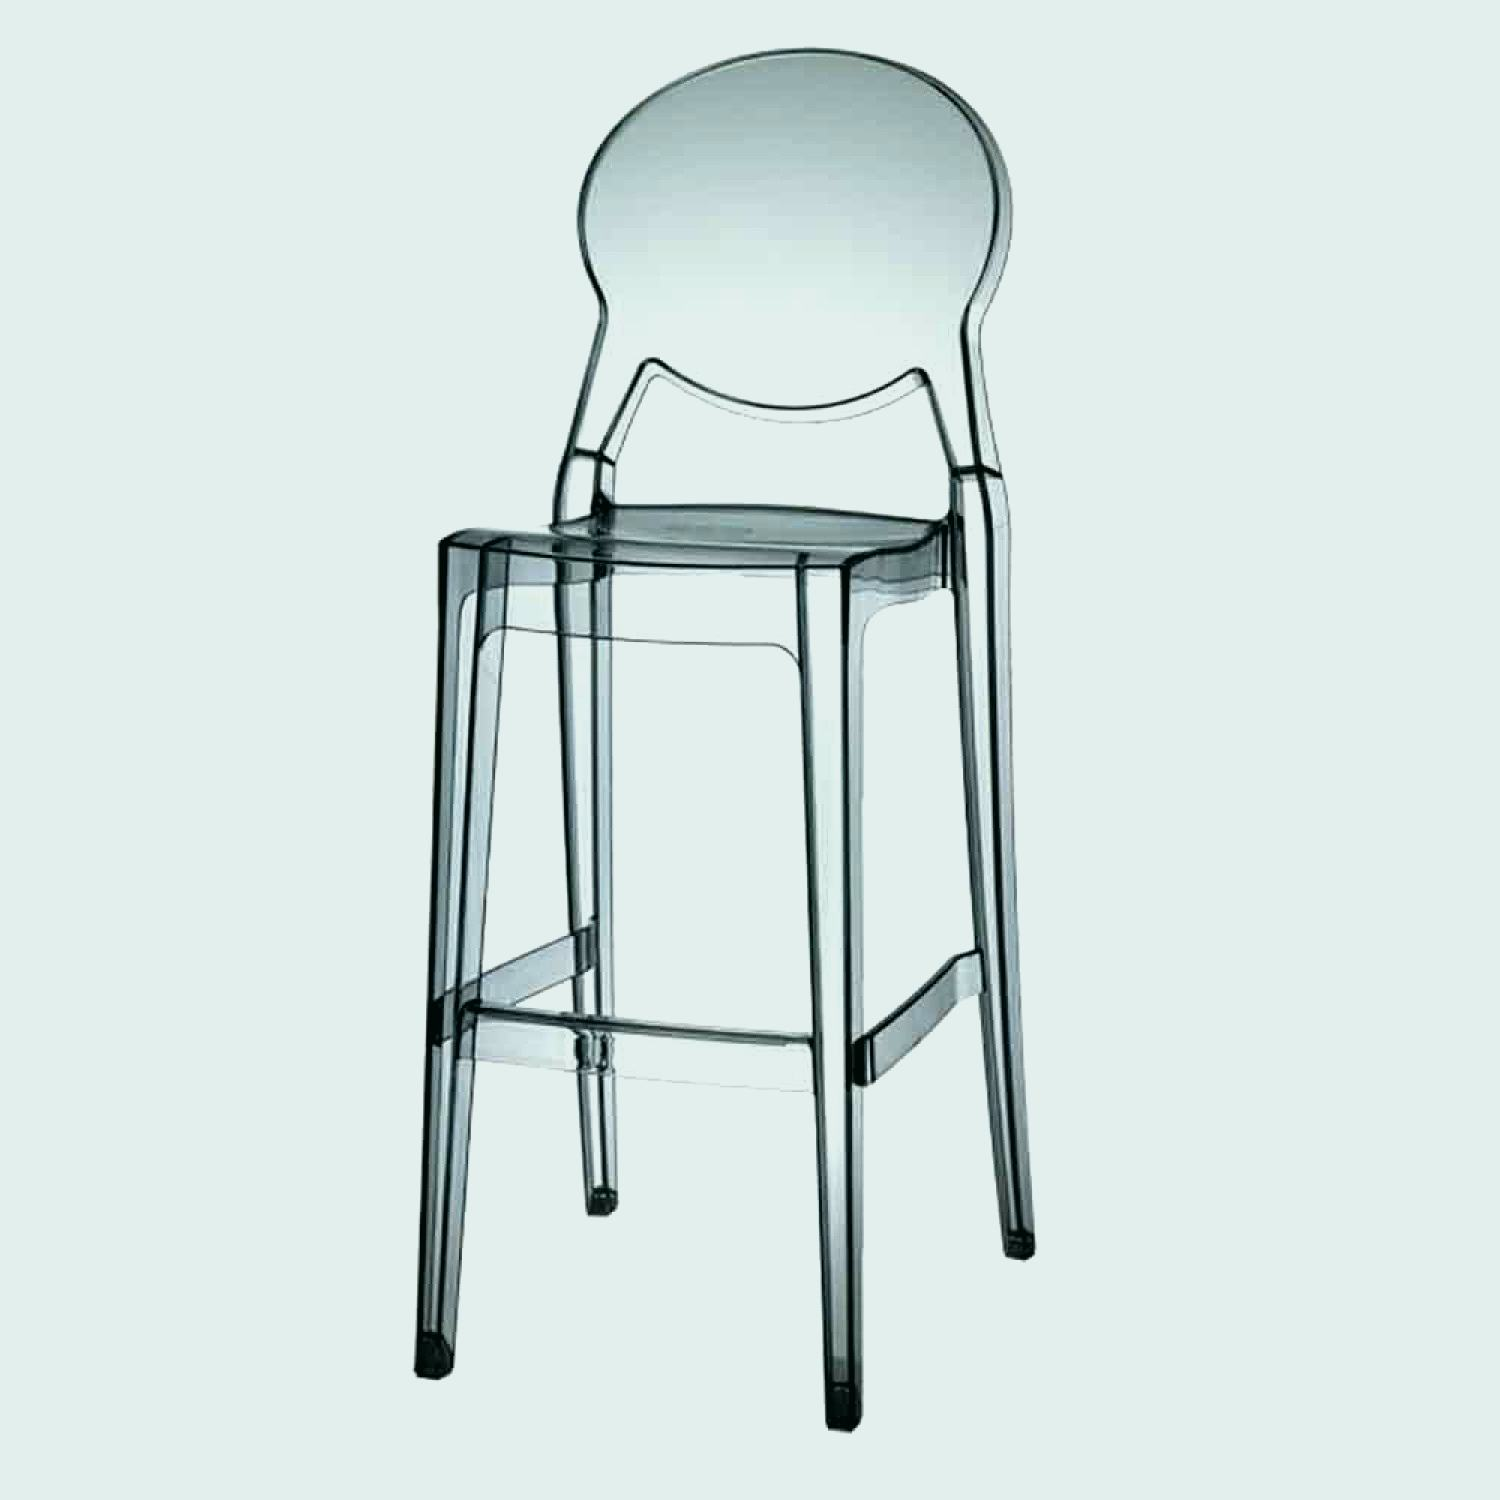 Tabouret De Bar Pliant Conforama Boutique Gain De Place Fr